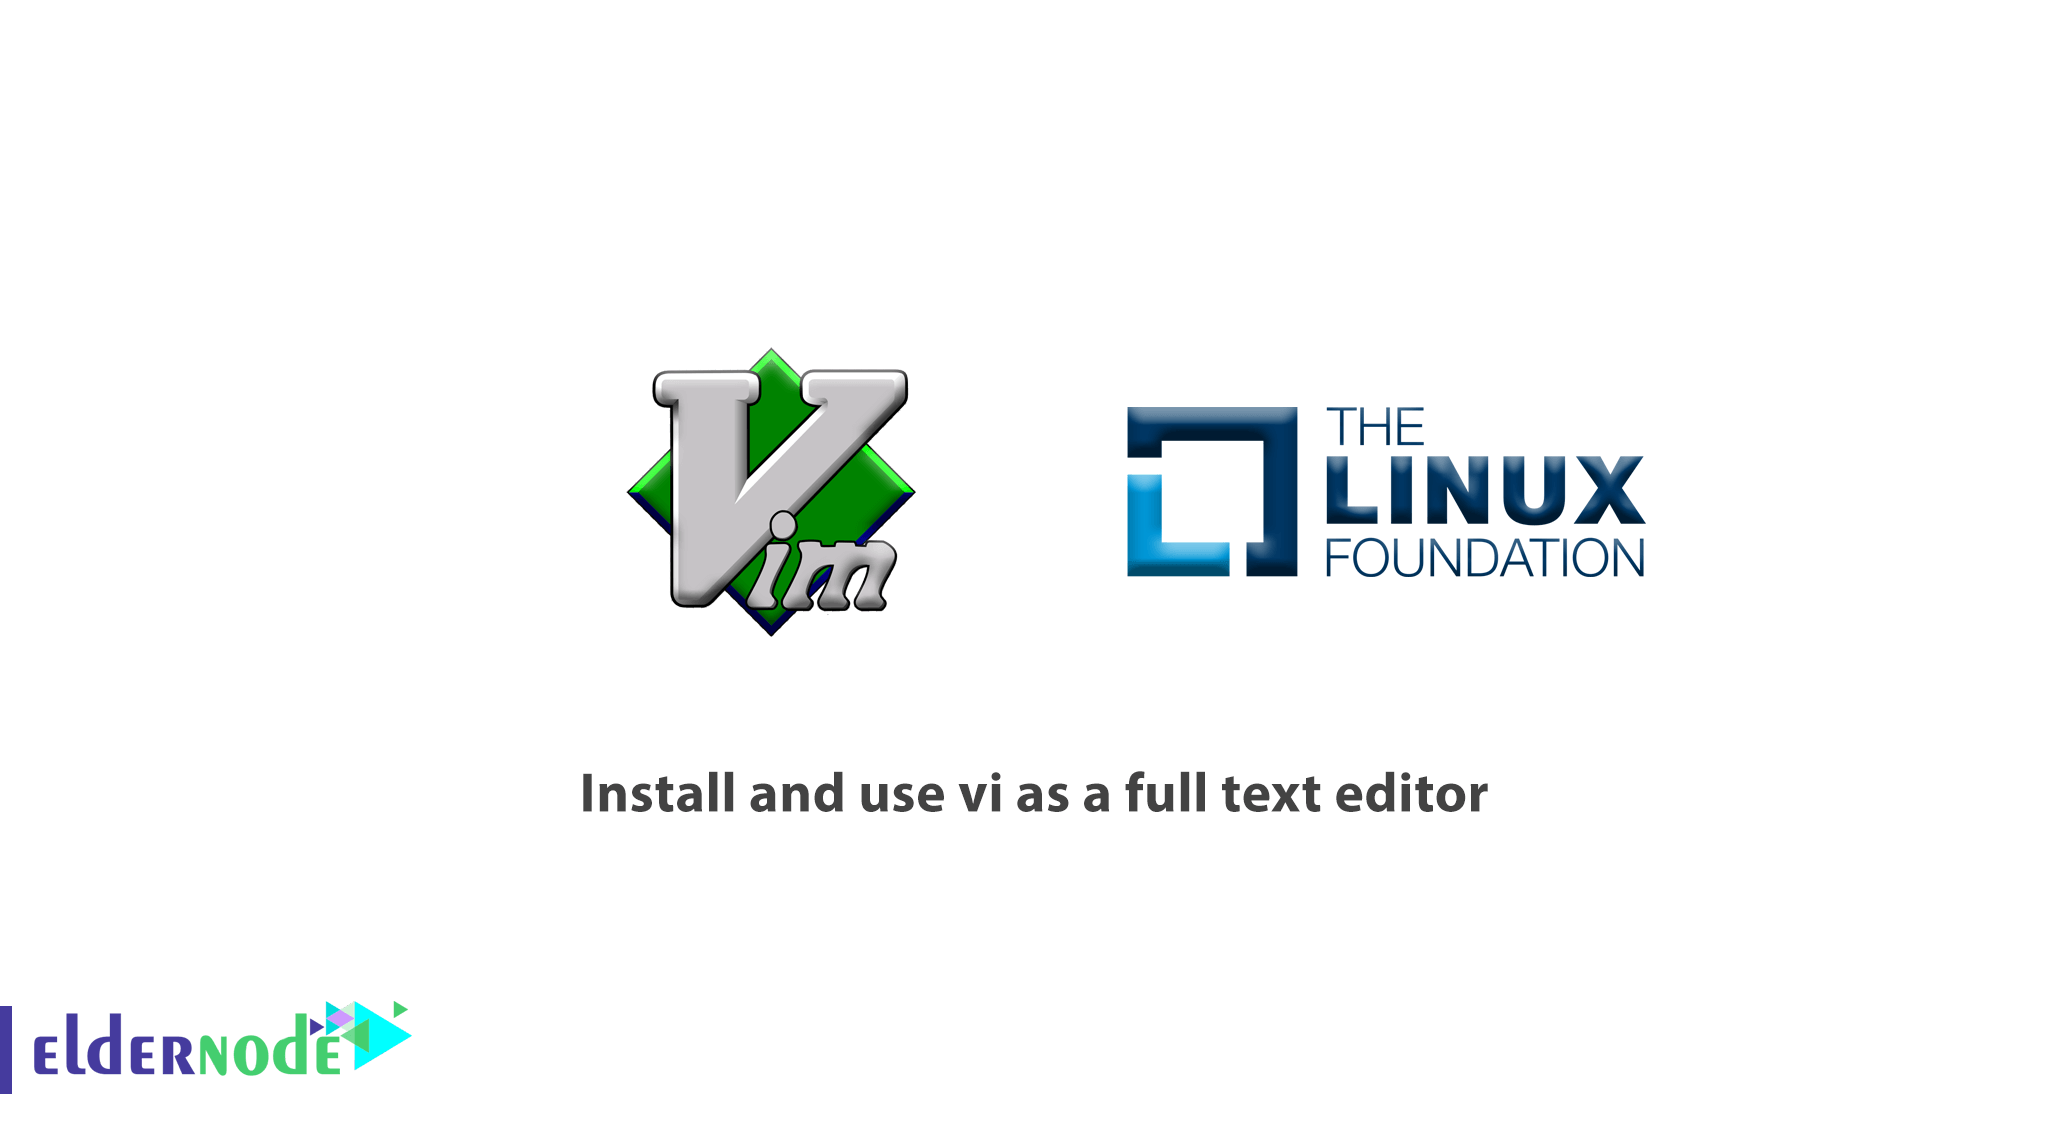 How to install and use vi as a full text editor